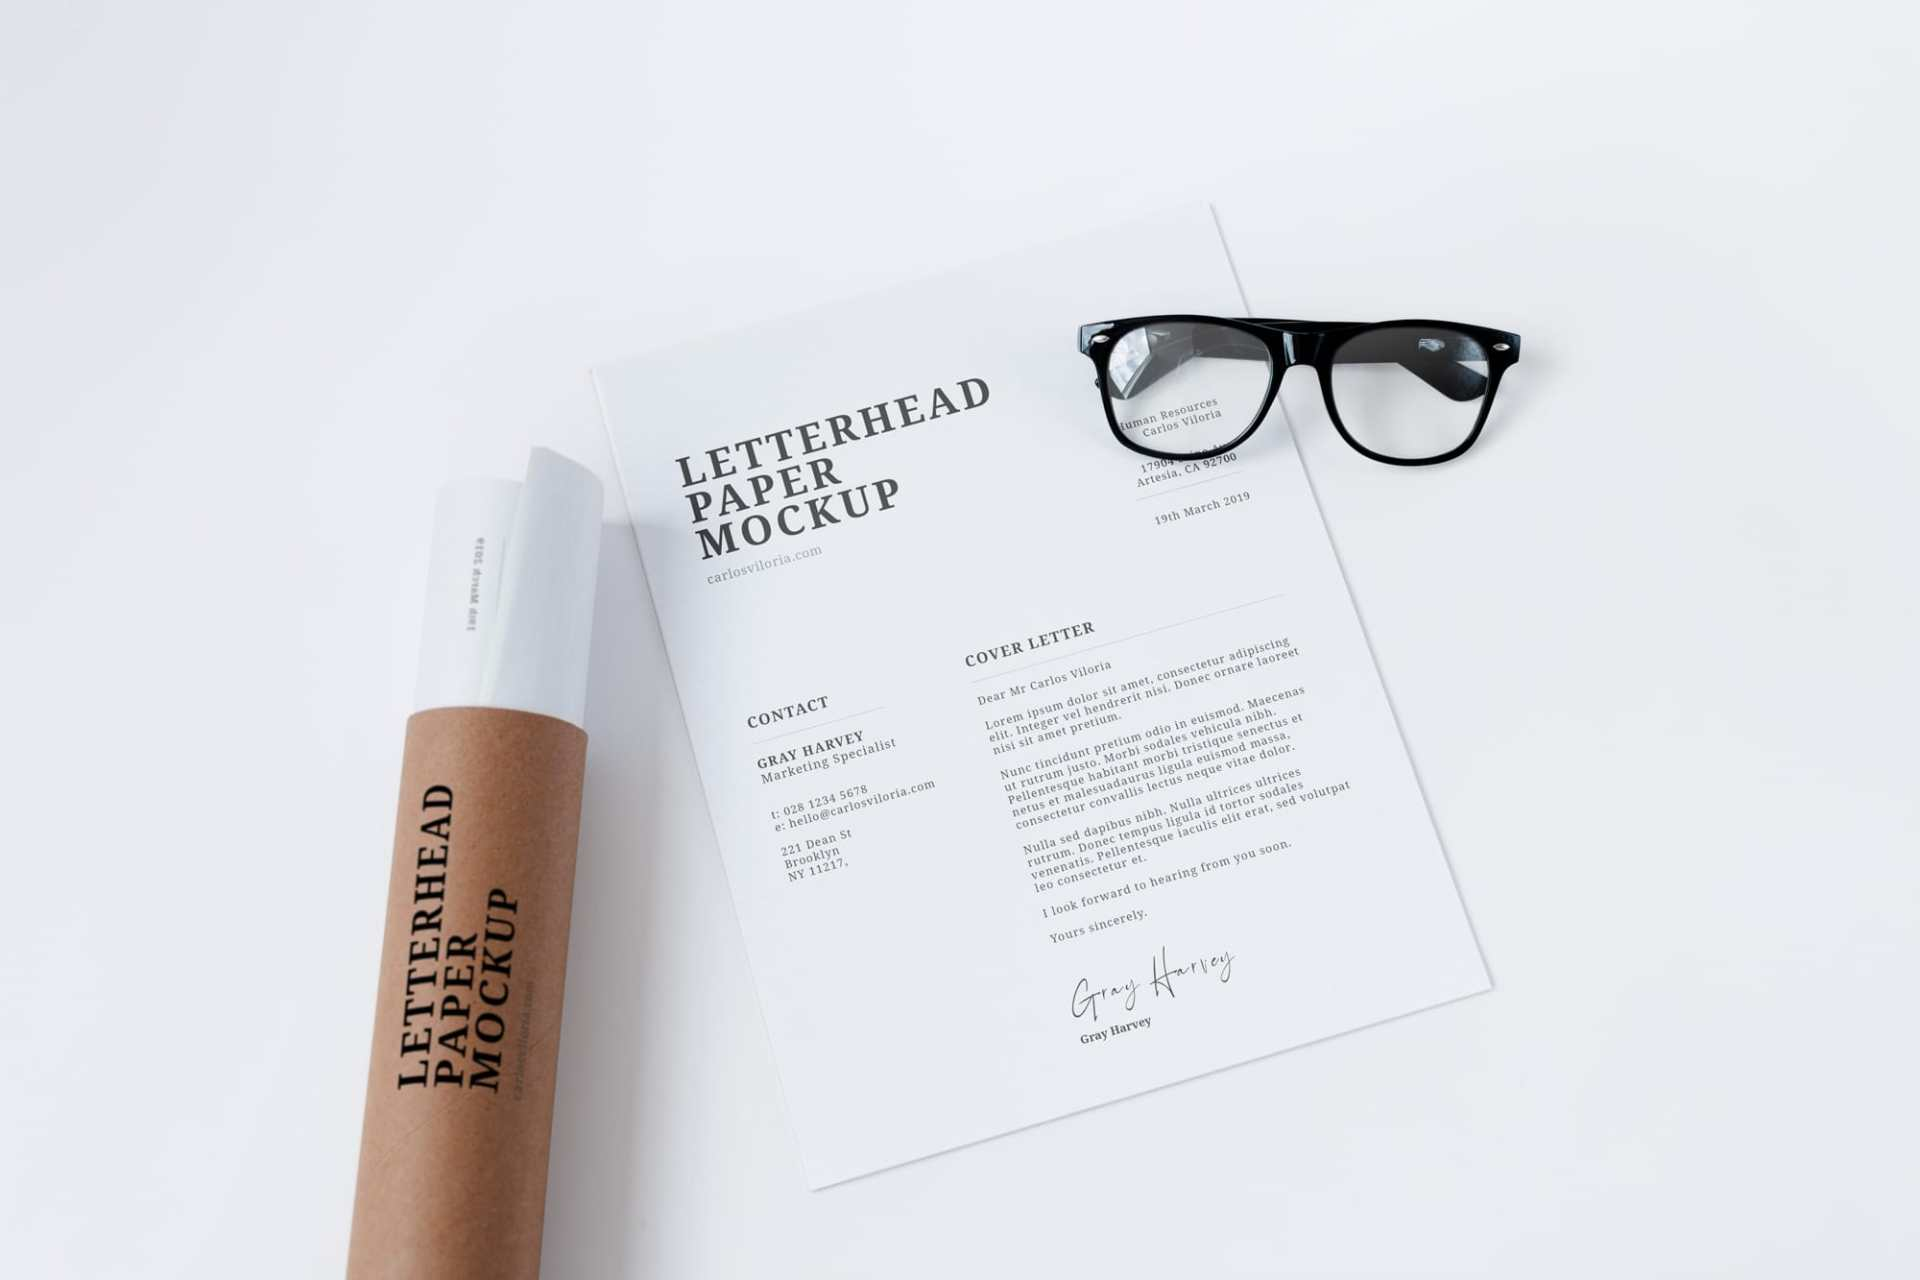 Free Letterhead Paper and Craft Tube Mockup